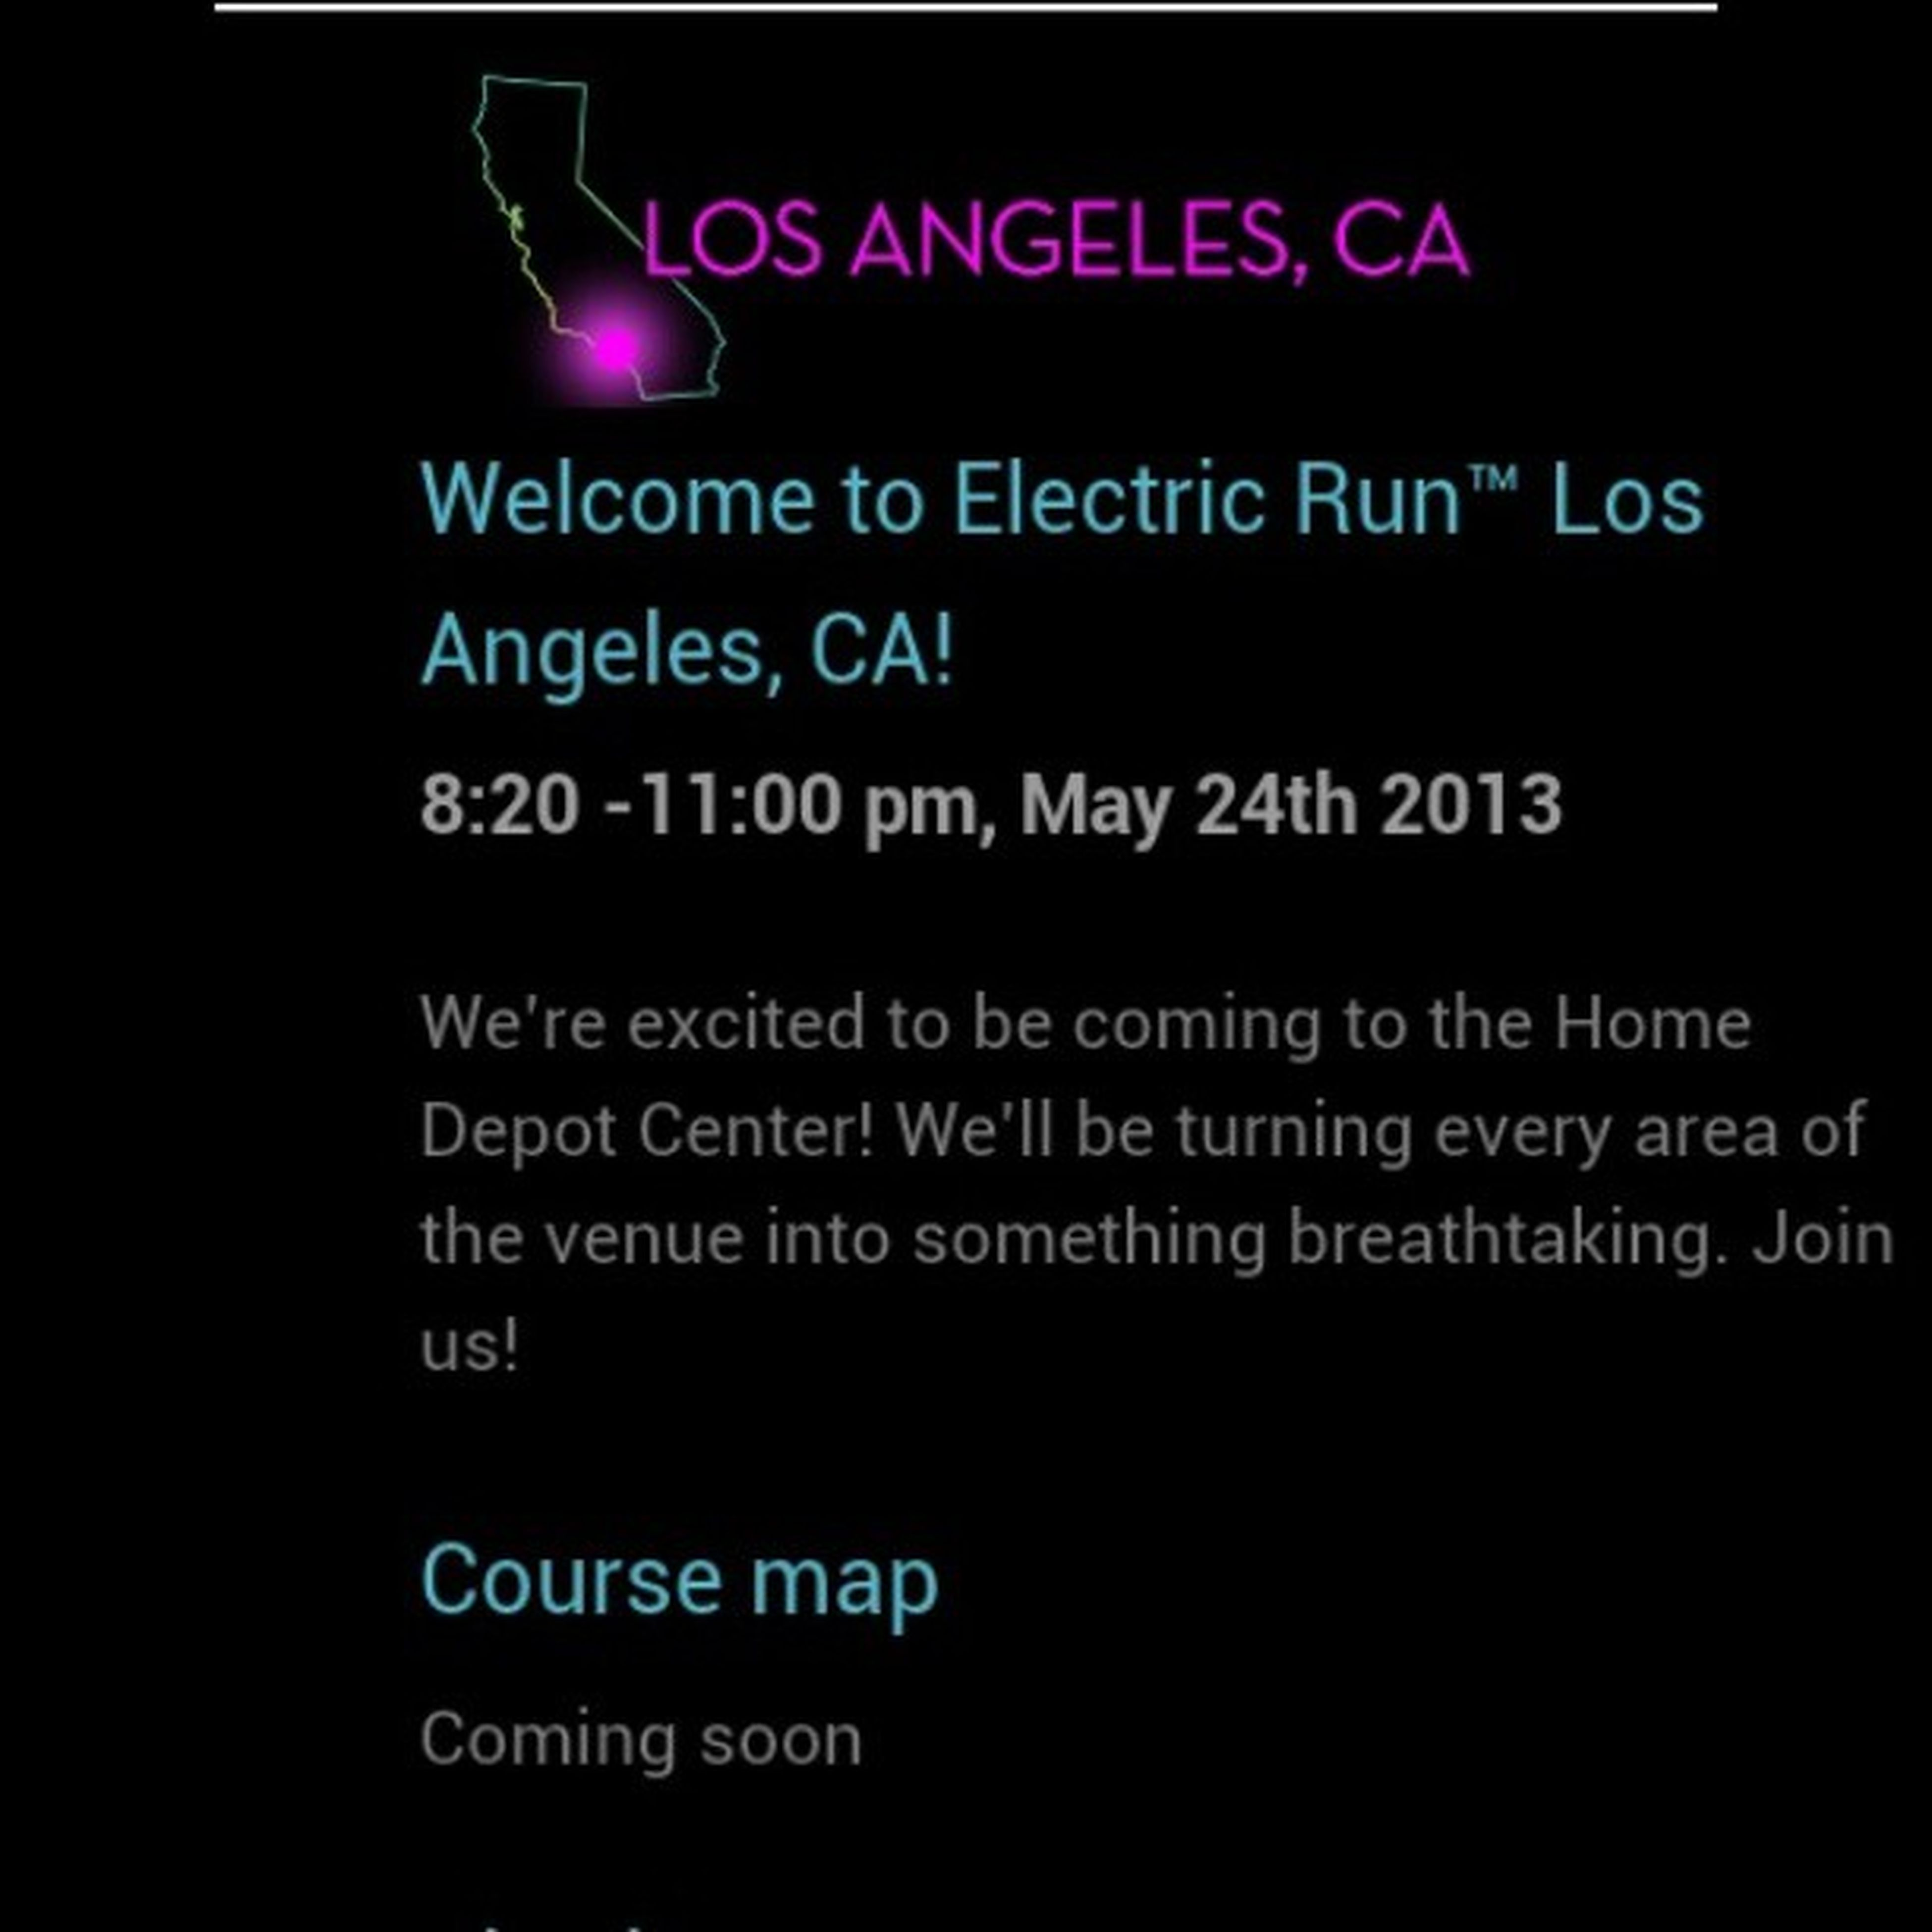 I'm going for sure!! My first 5K run I'm stoked to do this :D @electricrun Electricrun Readyforthat Itsgoingtobeanightthatiwillneverforget May24 @peaceloveramos are you down for it @thenamesgio?? Anyone else wants to come their more than welcome to join let me know if your interested so you can join ny team when I sign up